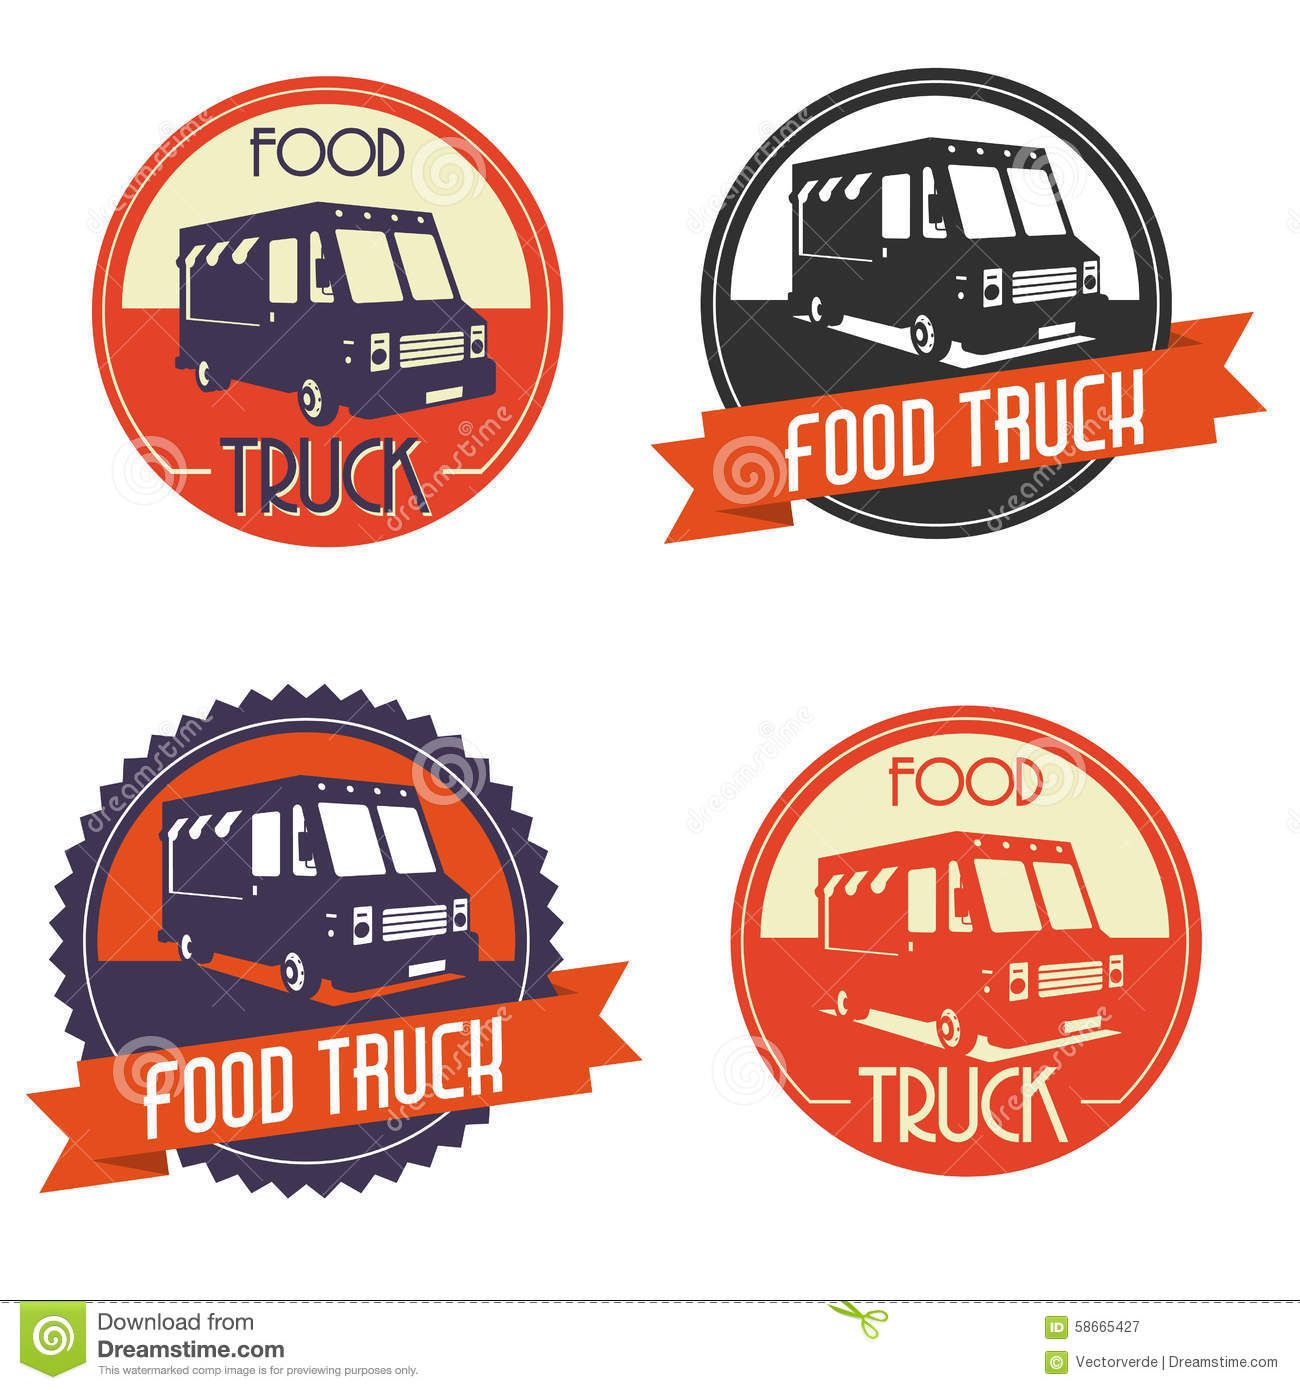 The rocket pizza food truck grits grids - Logo Food Truck